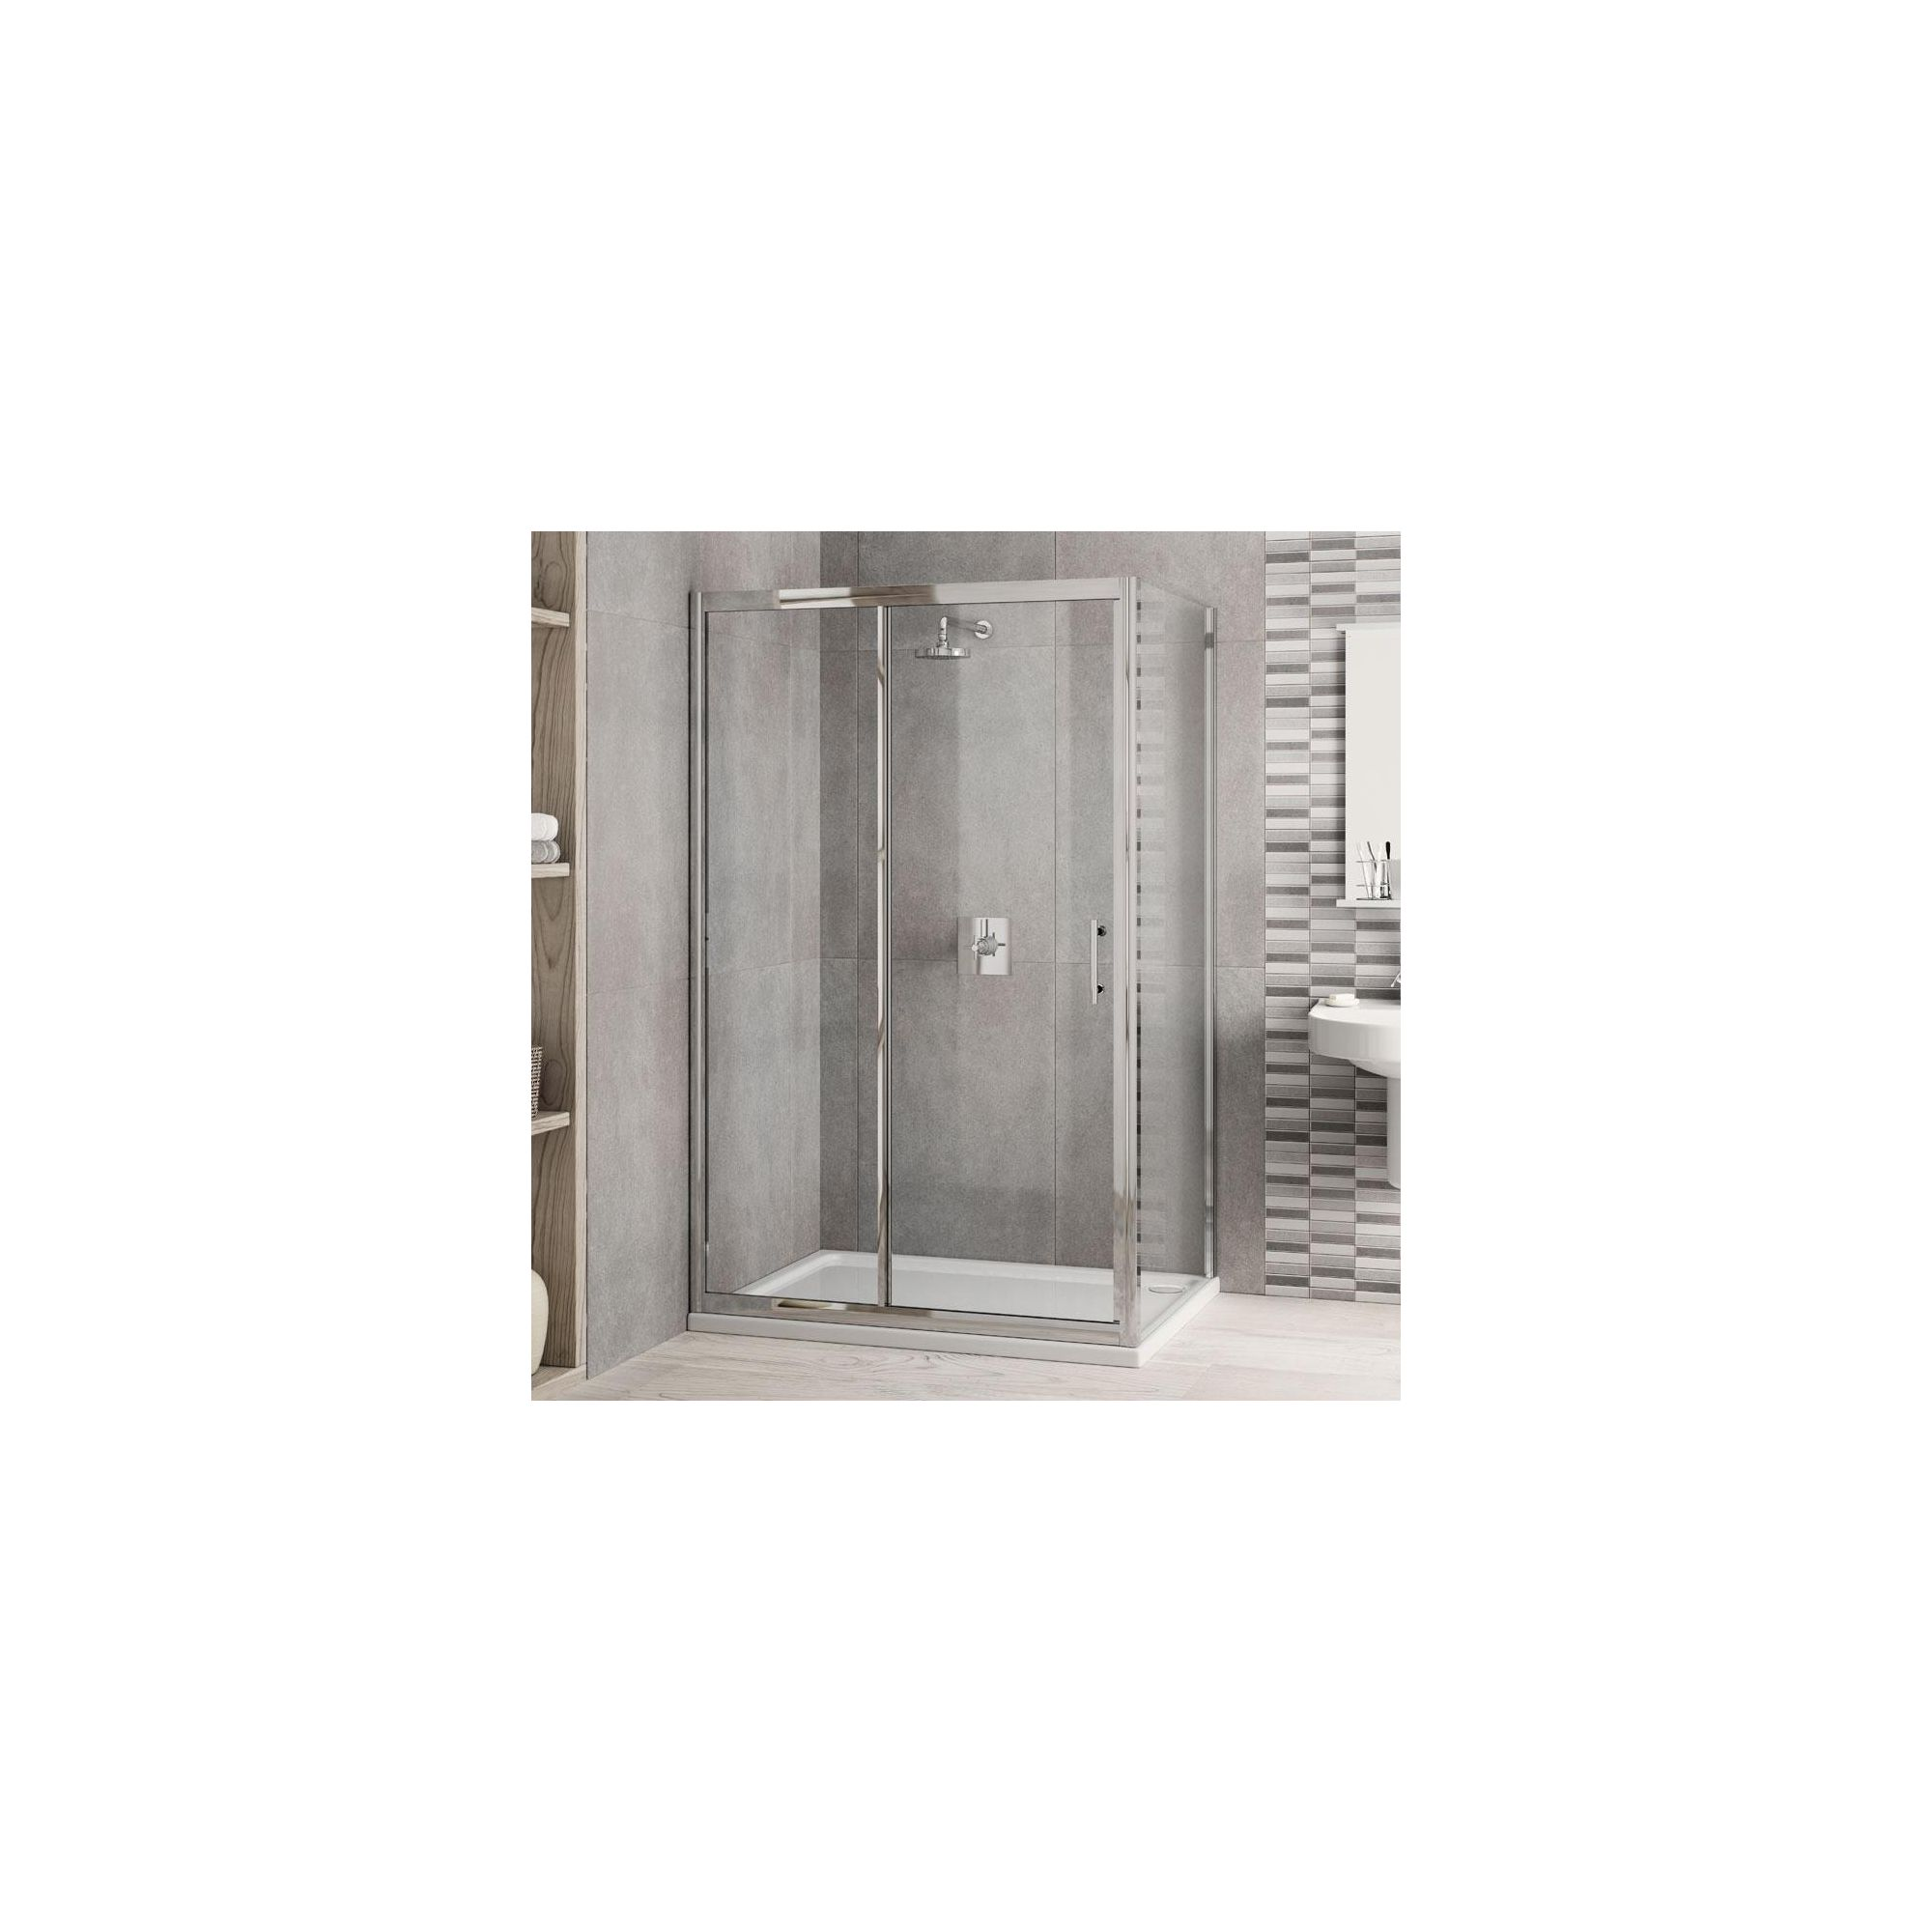 Elemis Inspire Two-Panel Jumbo Sliding Door Shower Enclosure, 1200mm x 800mm, 6mm Glass, Low Profile Tray at Tesco Direct